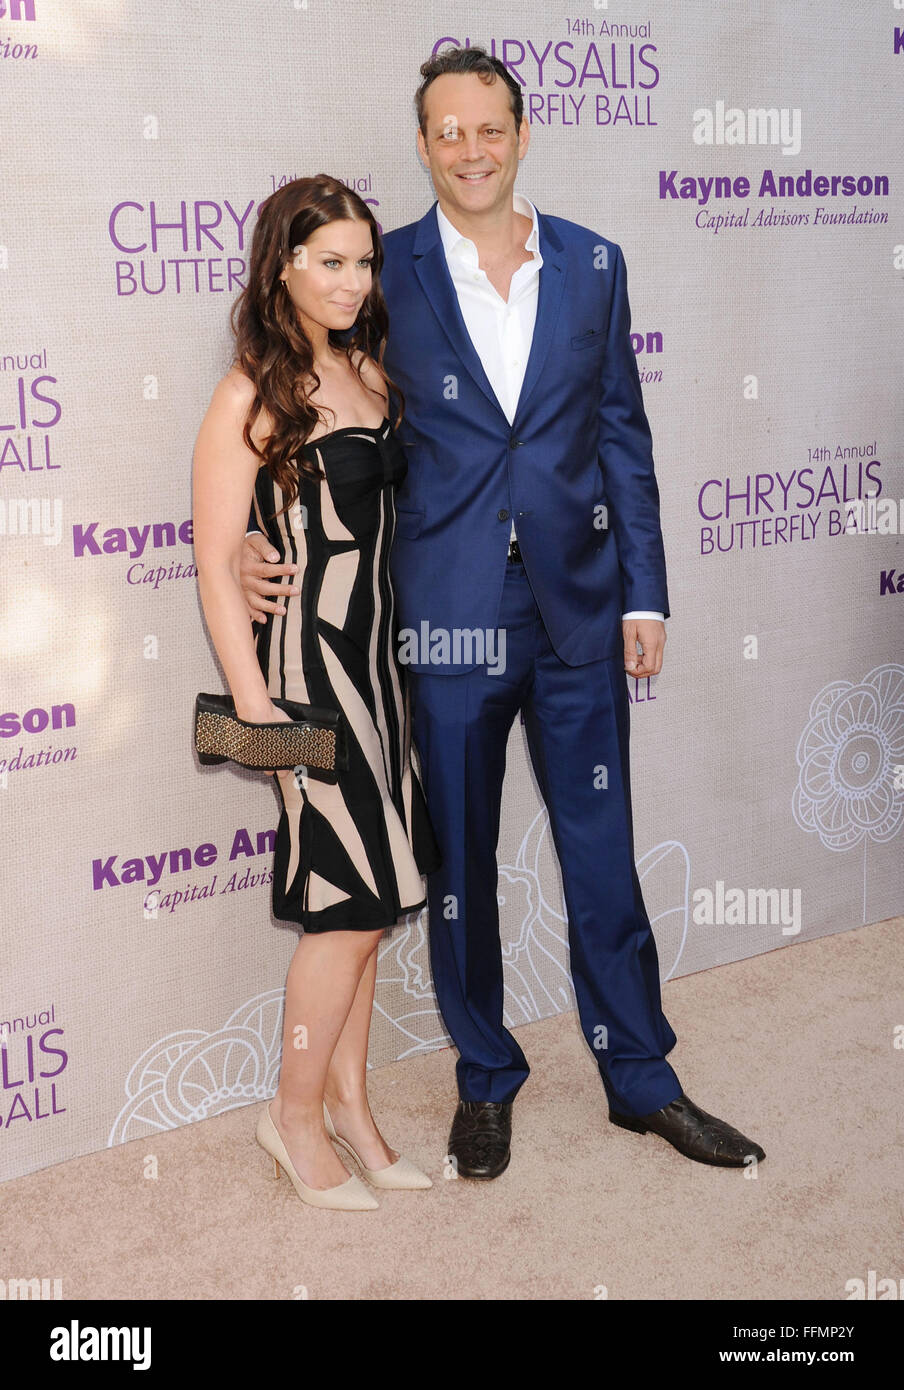 Kyla Weber High Resolution Stock Photography And Images Alamy Babies, kyla weber, vince vaughn. https www alamy com stock photo actor vince vaughn r and kyla weber attend the 14th annual chrysalis 95728051 html